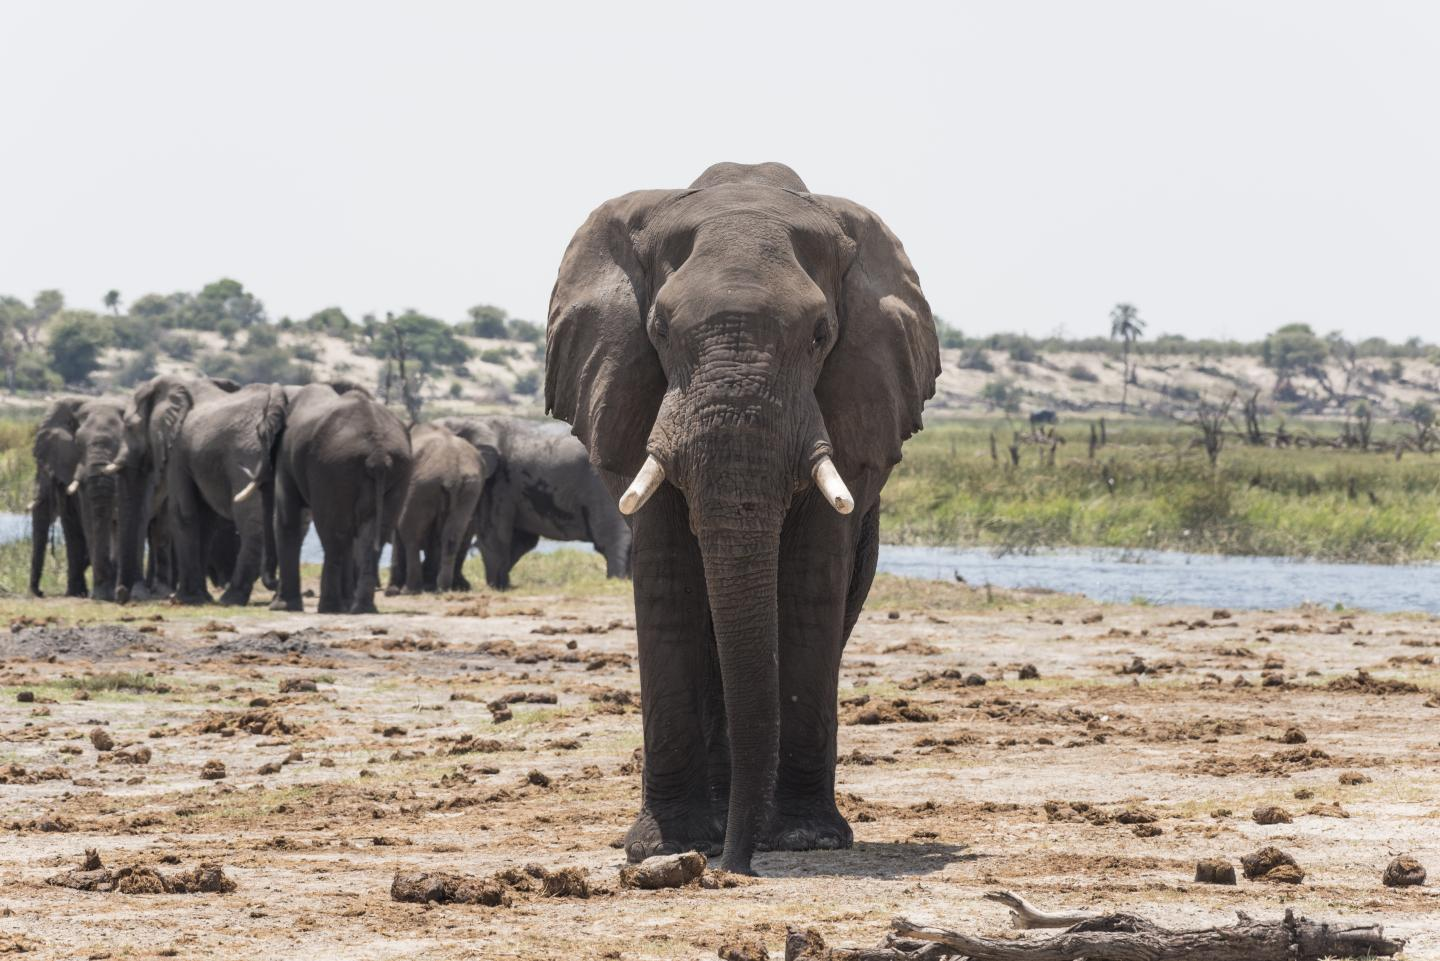 An elephant investigating dung with his trunk